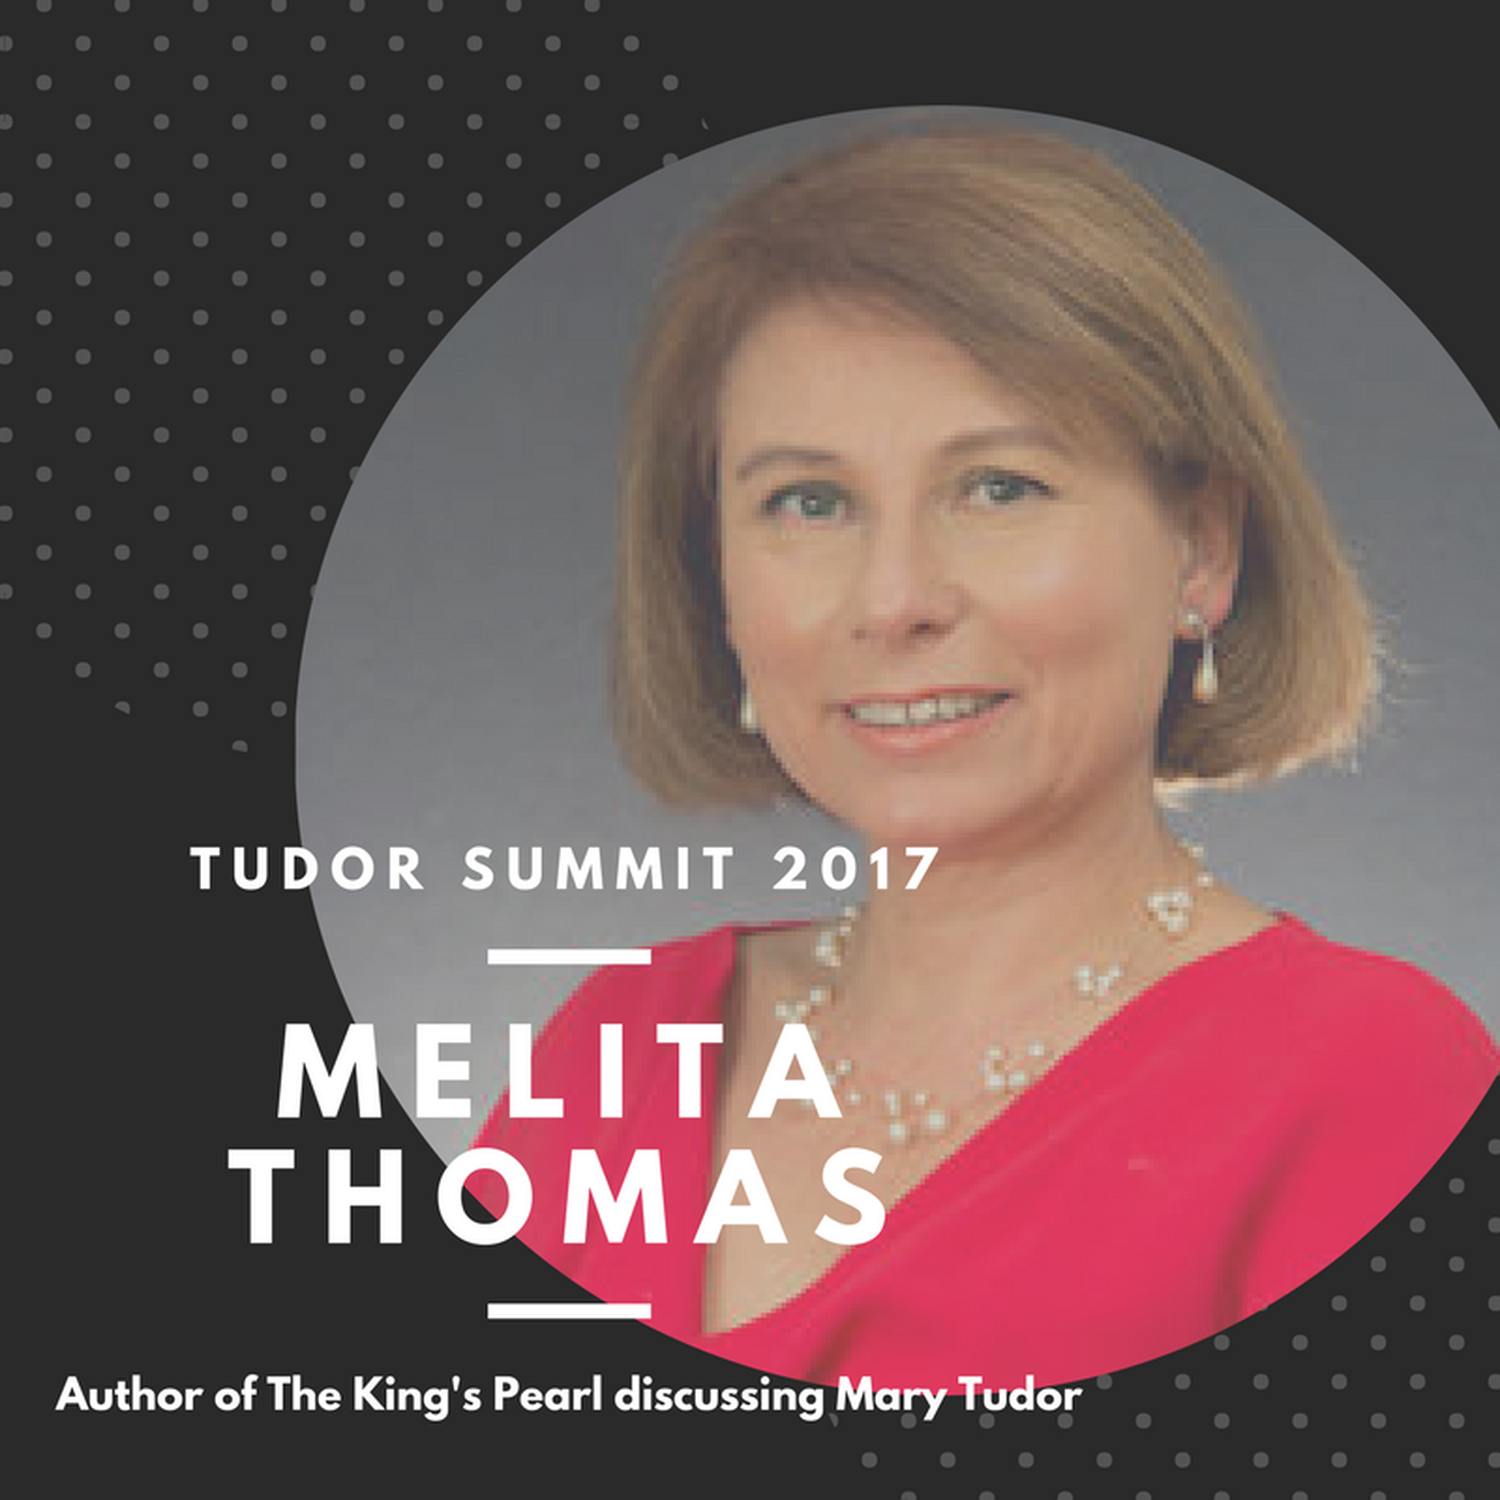 Supplementary - Melita Thomas at the Tudor Summit